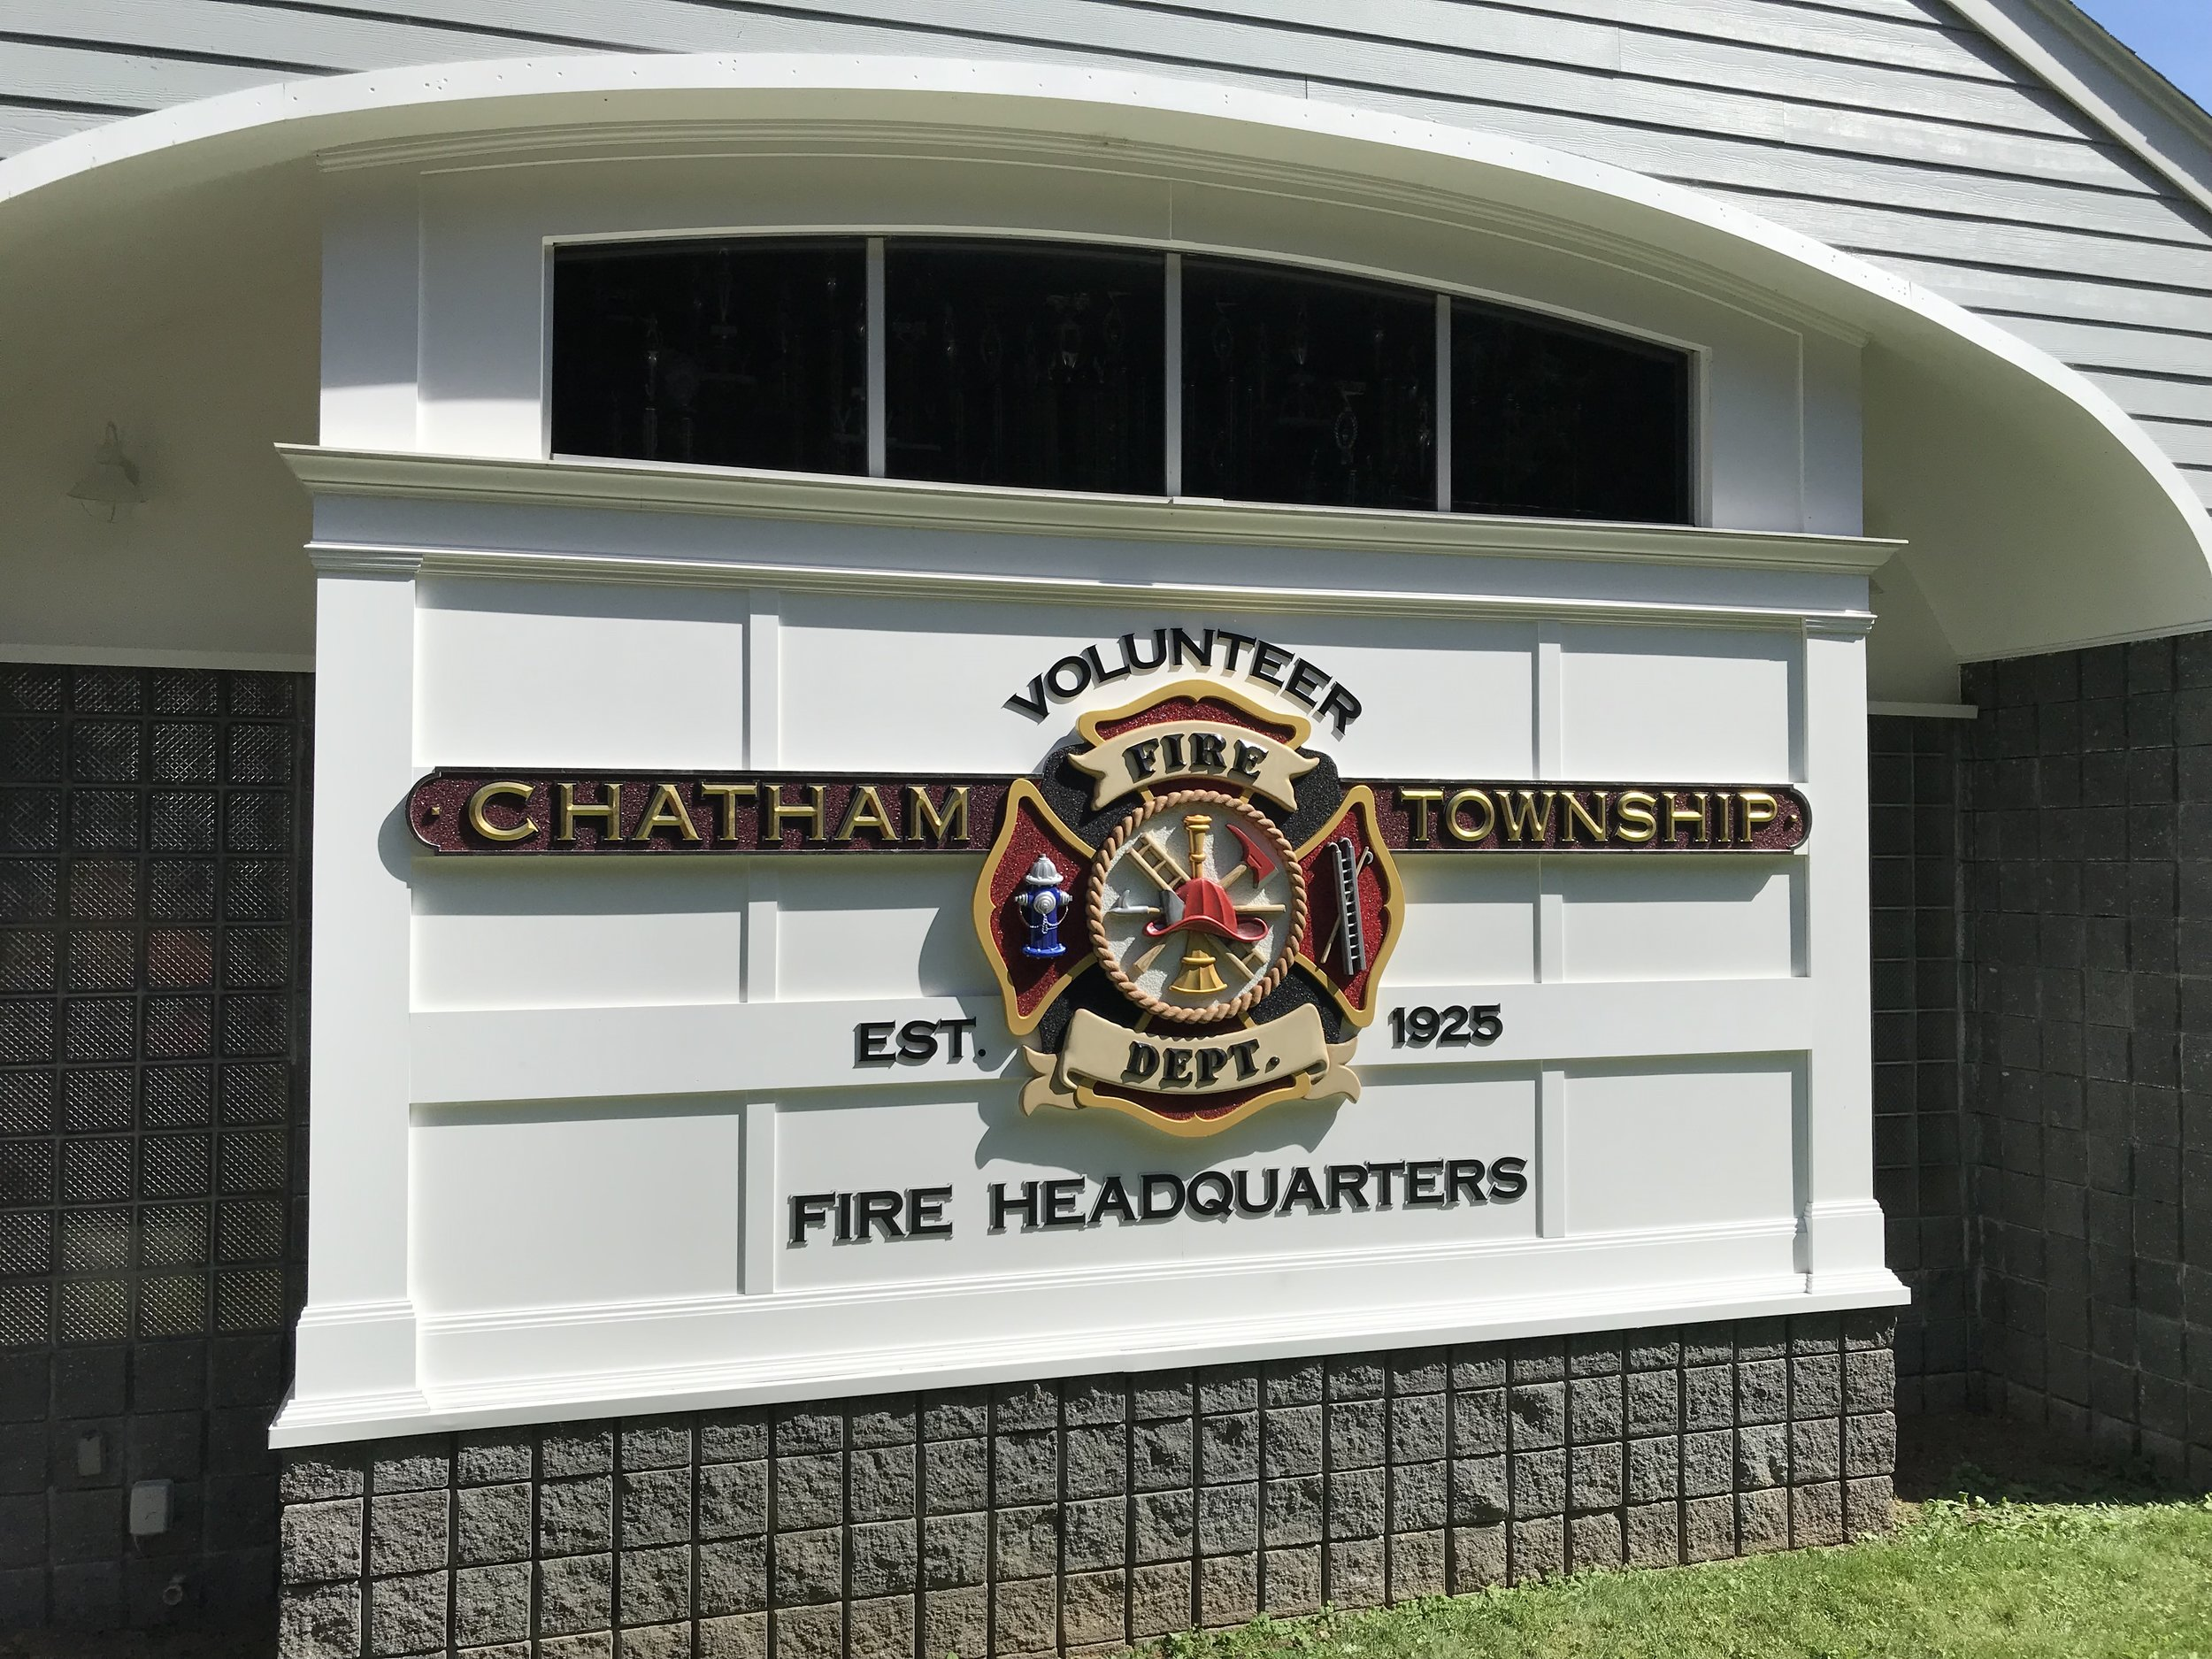 Today we completed a complex handcrafted sign for Chatham Township Fire Station 1. If features a fully sculpted Maltese cross with crushed glass smalts giving it that great sparke! CHATHAM TOWNSHIP is a prismatic letter with 23.5K gold leaf imported from Italy. The letters are black dibond mounted on an Azek paneled background. It's quite a stunning display especially on a beutiful sunny day like today!